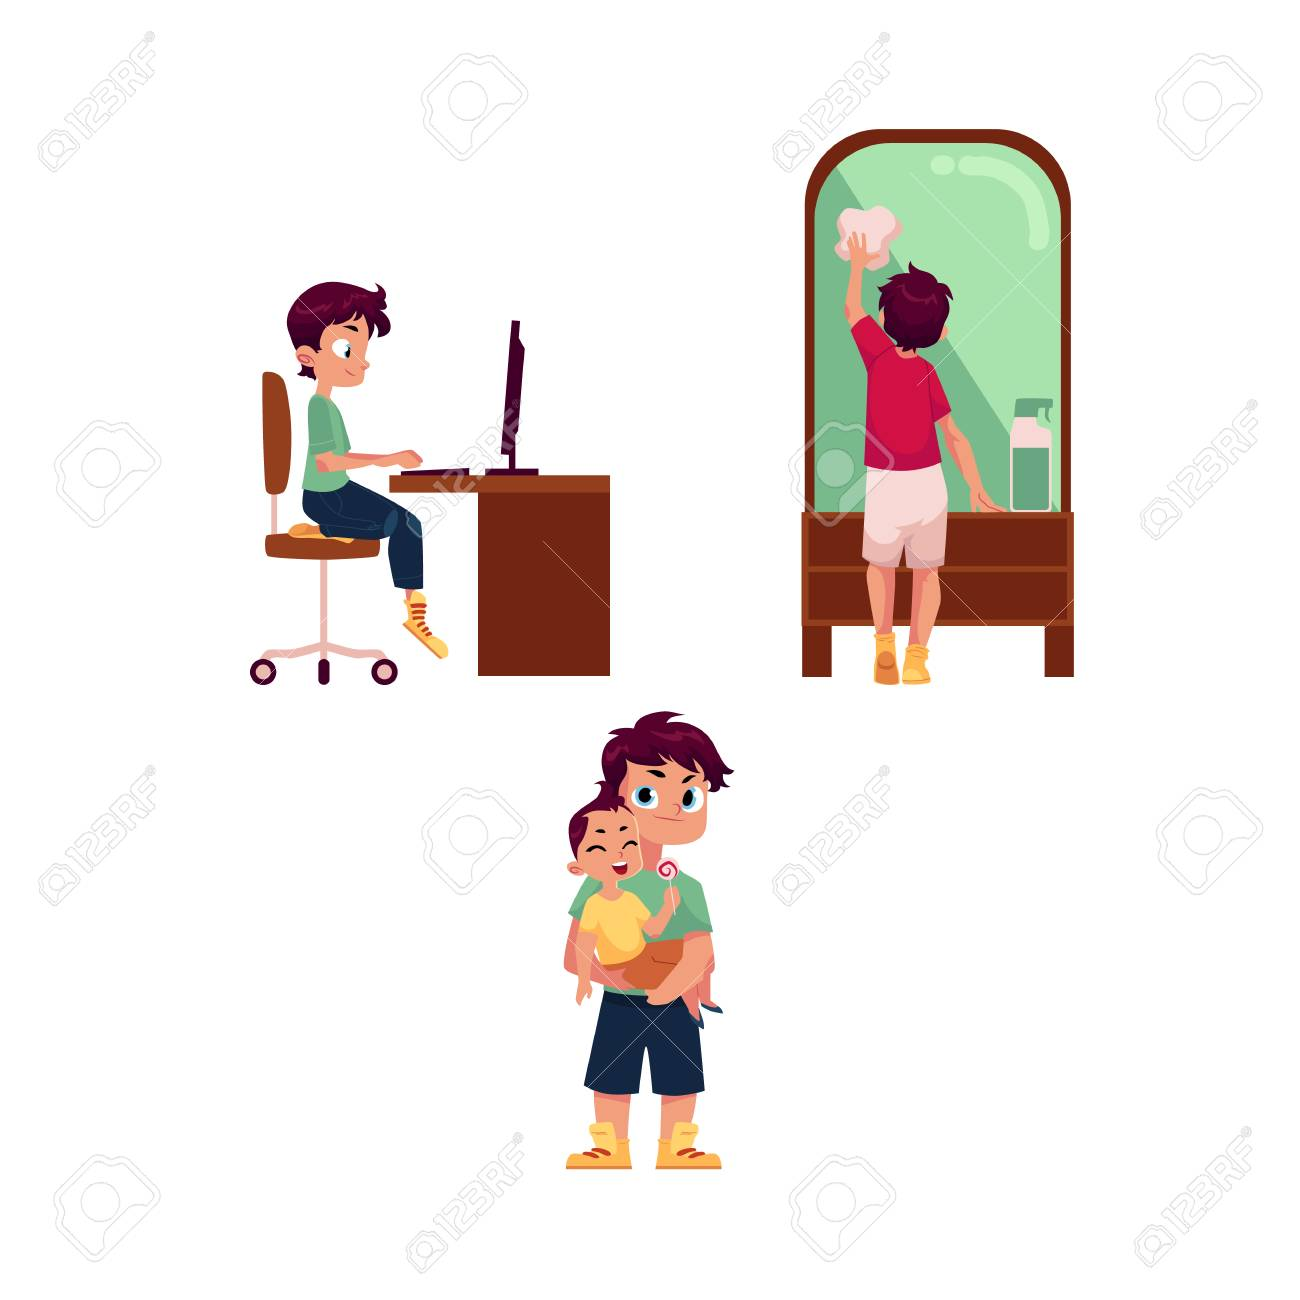 vector vector flat cartoon teen boy kid doing household chores cleaning big mirror by rag doing homework sitting at computer desk taking care of